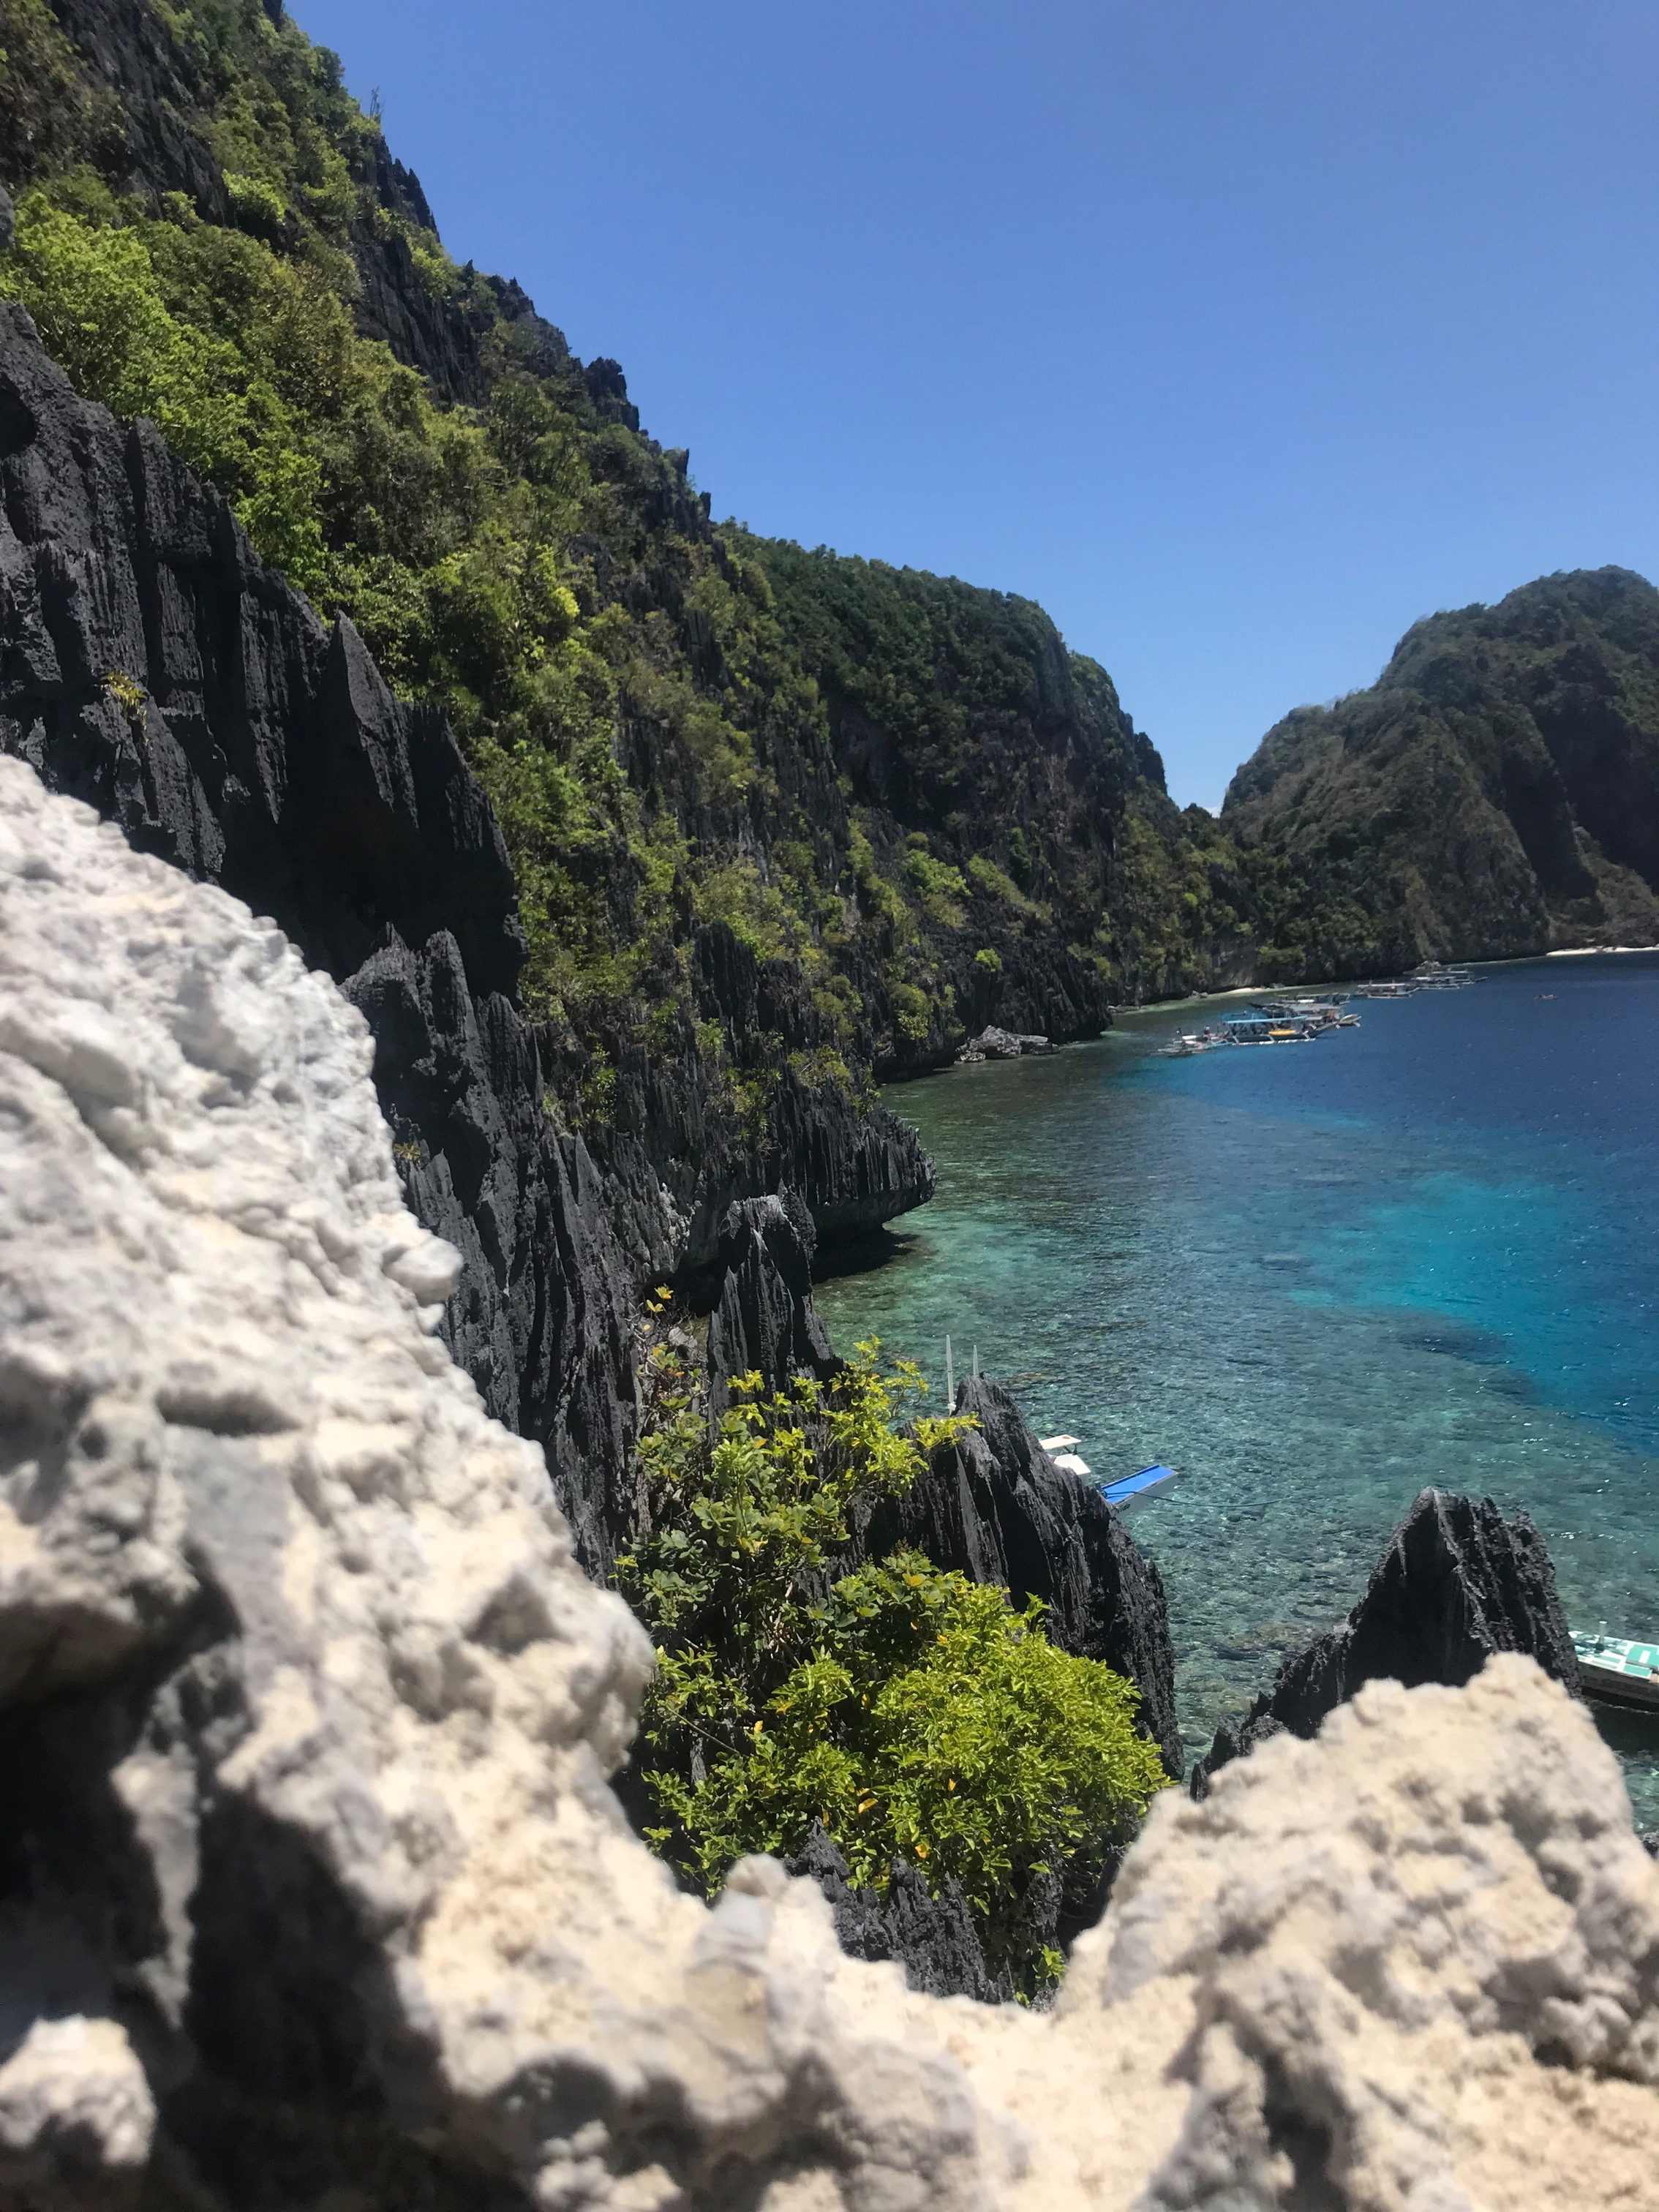 These views from the island hopping tour were ridiculous. Tour C